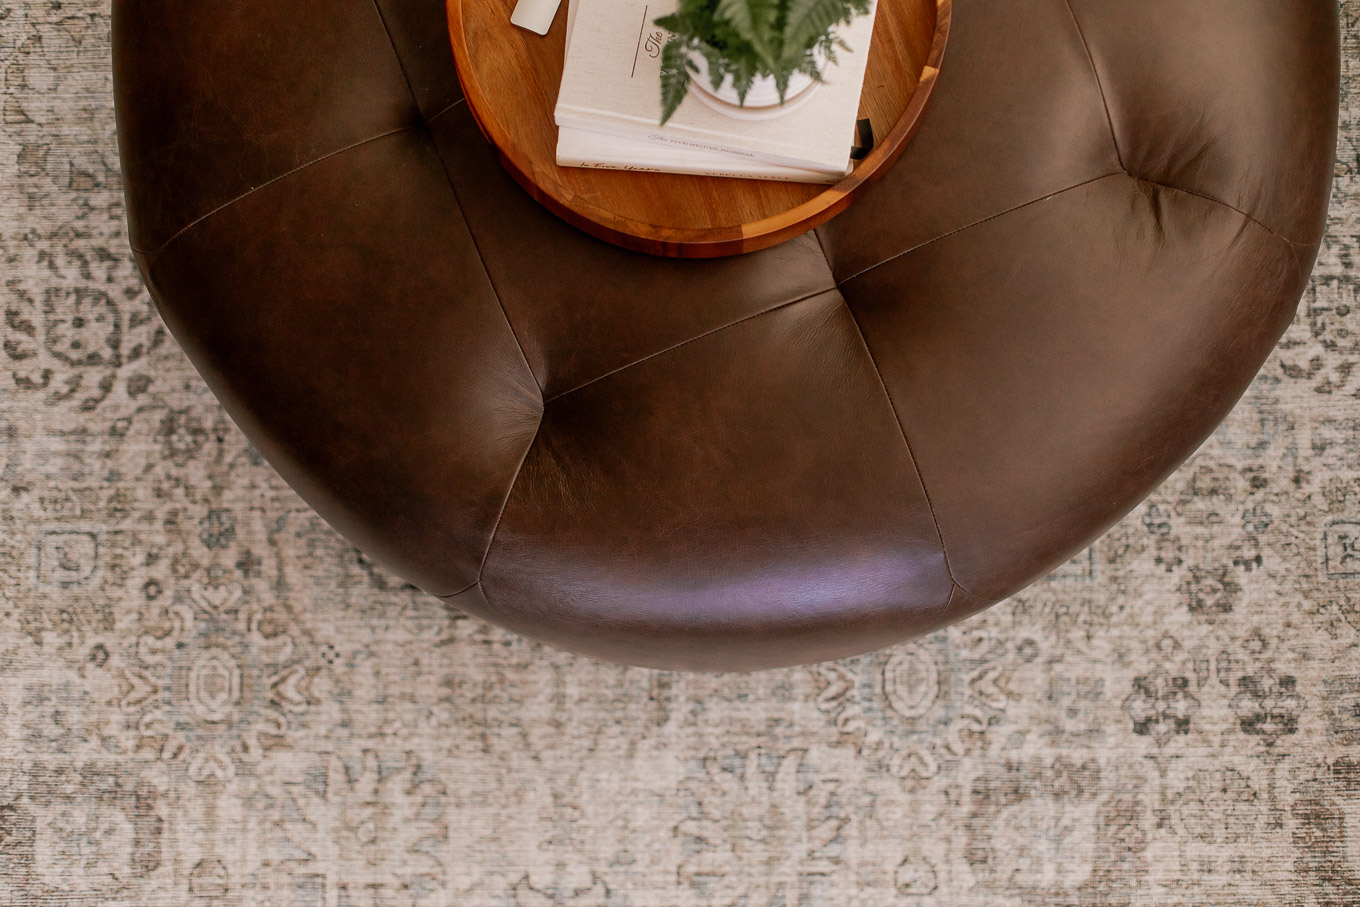 Searching for the Perfect Coffee Table - Article Timpani Ottoman Review | Round Leather Ottoman | Louella Reese, North Carolina Lifestyle and Fashion Blog